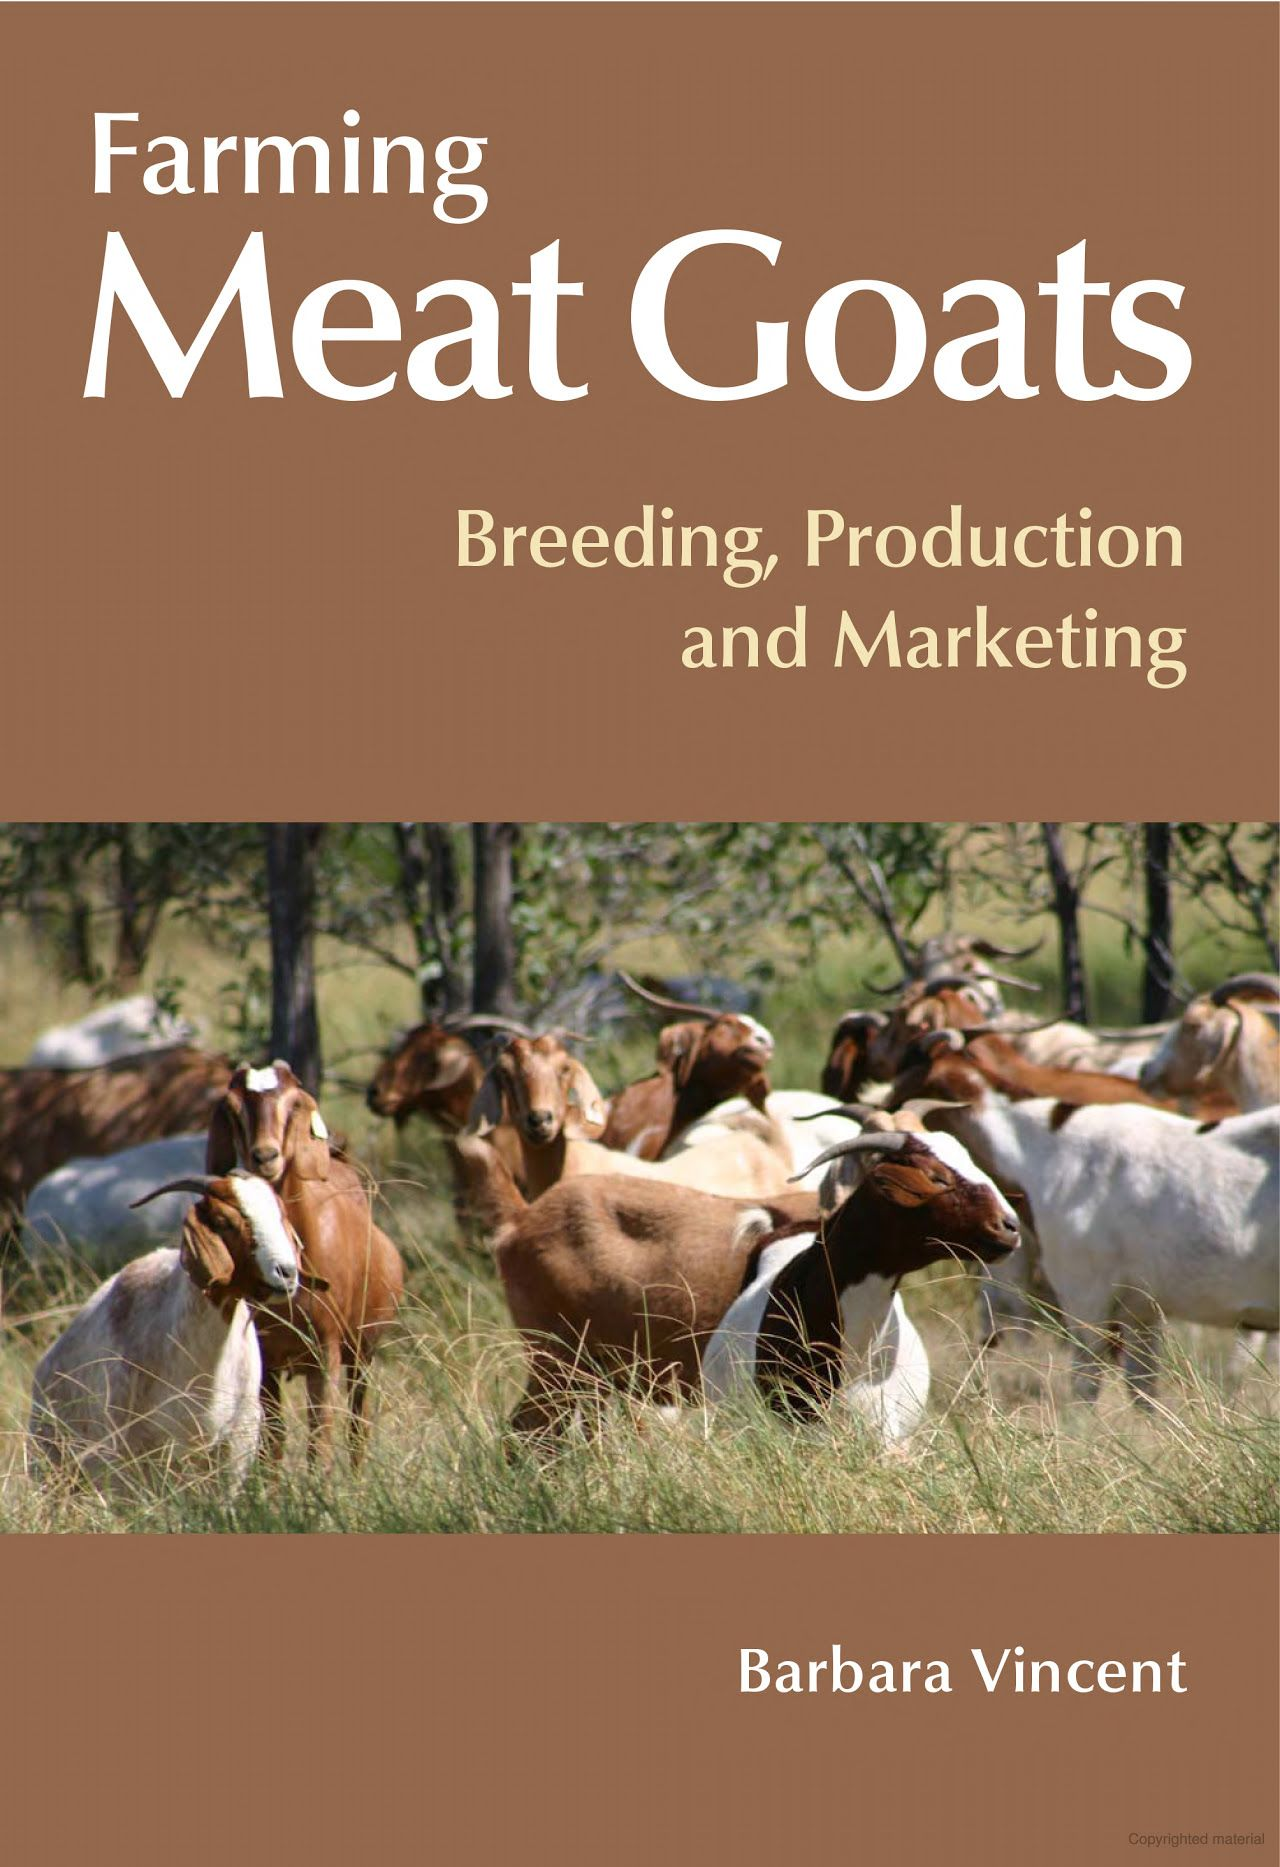 Farming Meat Goats ebook looks of really good general